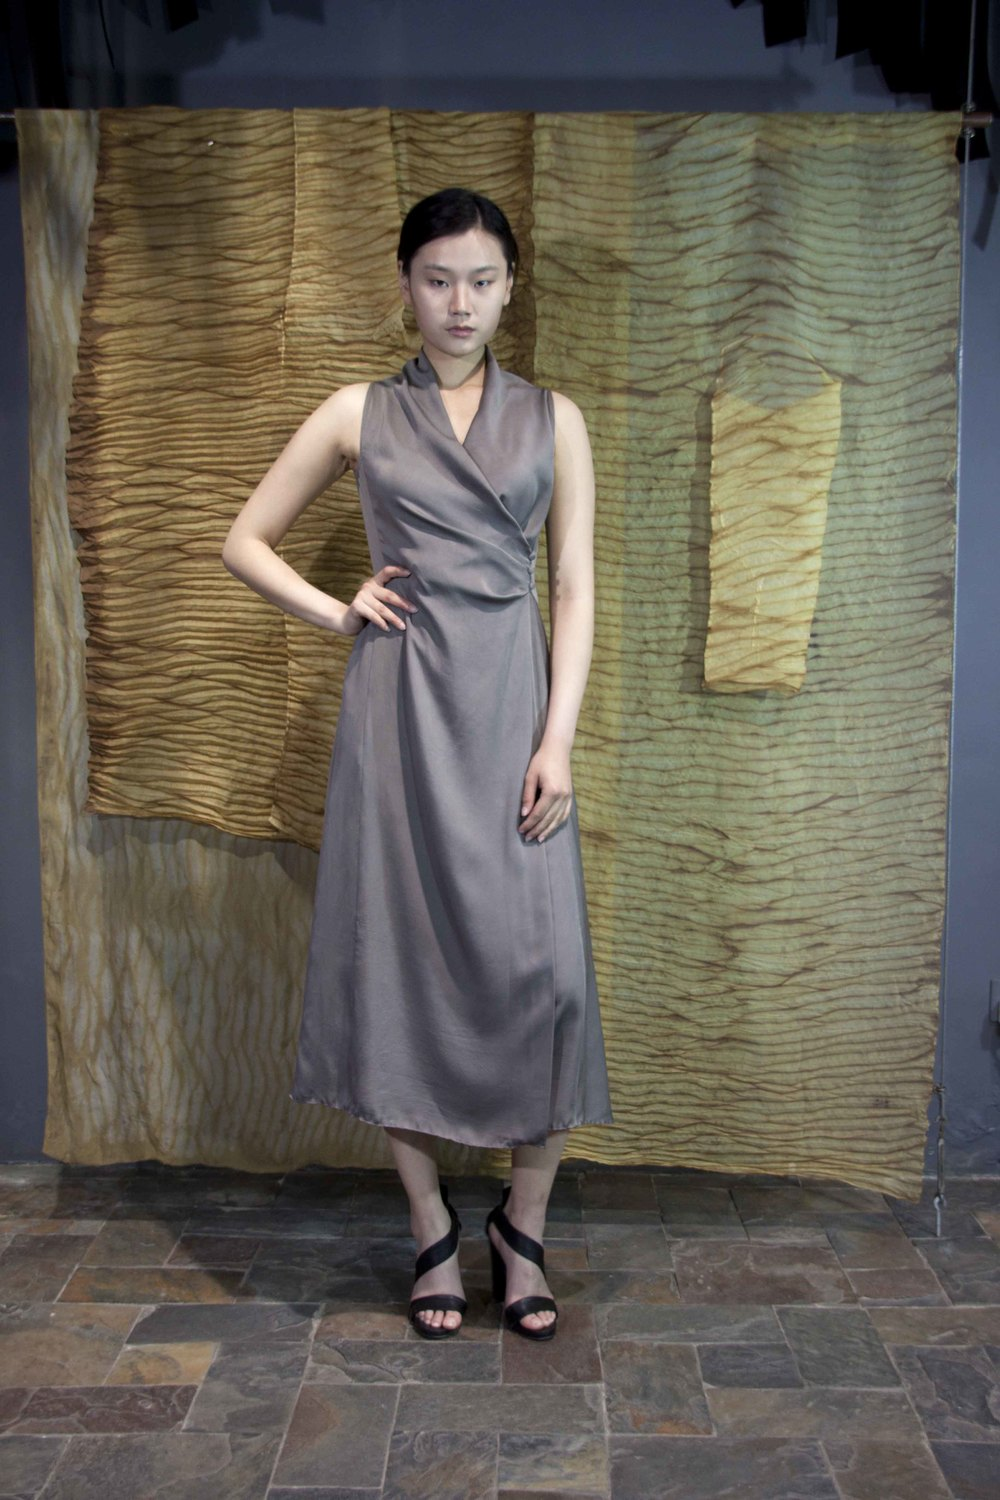 "28-33 Ash grey natural-dyed silk wrap-around dress with side buttons  /   灰色手工染色腰部压褶三粒纽扣款连衣裙                                                                                                                                                                                                                                                                                                     /* Style Definitions */  table.MsoNormalTable 	{mso-style-name:""Table Normal""; 	mso-tstyle-rowband-size:0; 	mso-tstyle-colband-size:0; 	mso-style-noshow:yes; 	mso-style-priority:99; 	mso-style-qformat:yes; 	mso-style-parent:""""; 	mso-padding-alt:0in 5.4pt 0in 5.4pt; 	mso-para-margin-top:0in; 	mso-para-margin-right:0in; 	mso-para-margin-bottom:10.0pt; 	mso-para-margin-left:0in; 	line-height:115%; 	mso-pagination:widow-orphan; 	font-size:11.0pt; 	font-family:""Calibri"",""sans-serif""; 	mso-ascii-font-family:Calibri; 	mso-ascii-theme-font:minor-latin; 	mso-hansi-font-family:Calibri; 	mso-hansi-theme-font:minor-latin; 	mso-bidi-font-family:""Times New Roman""; 	mso-bidi-theme-font:minor-bidi;}"